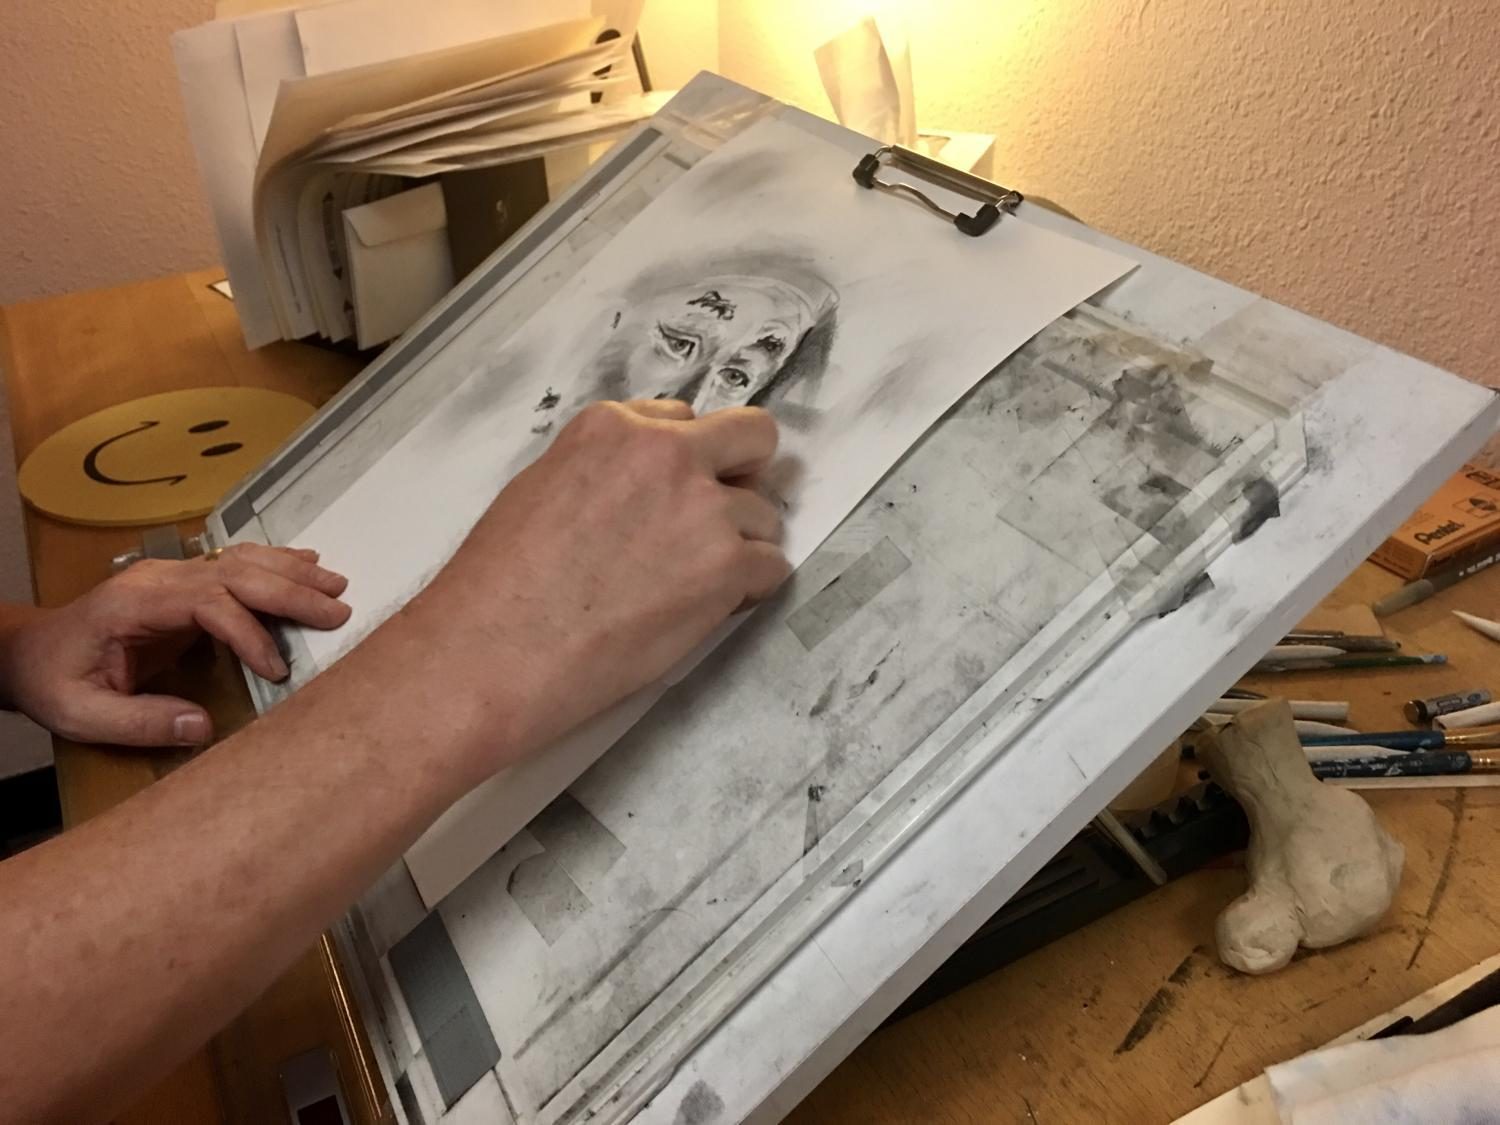 hand on paper drawing